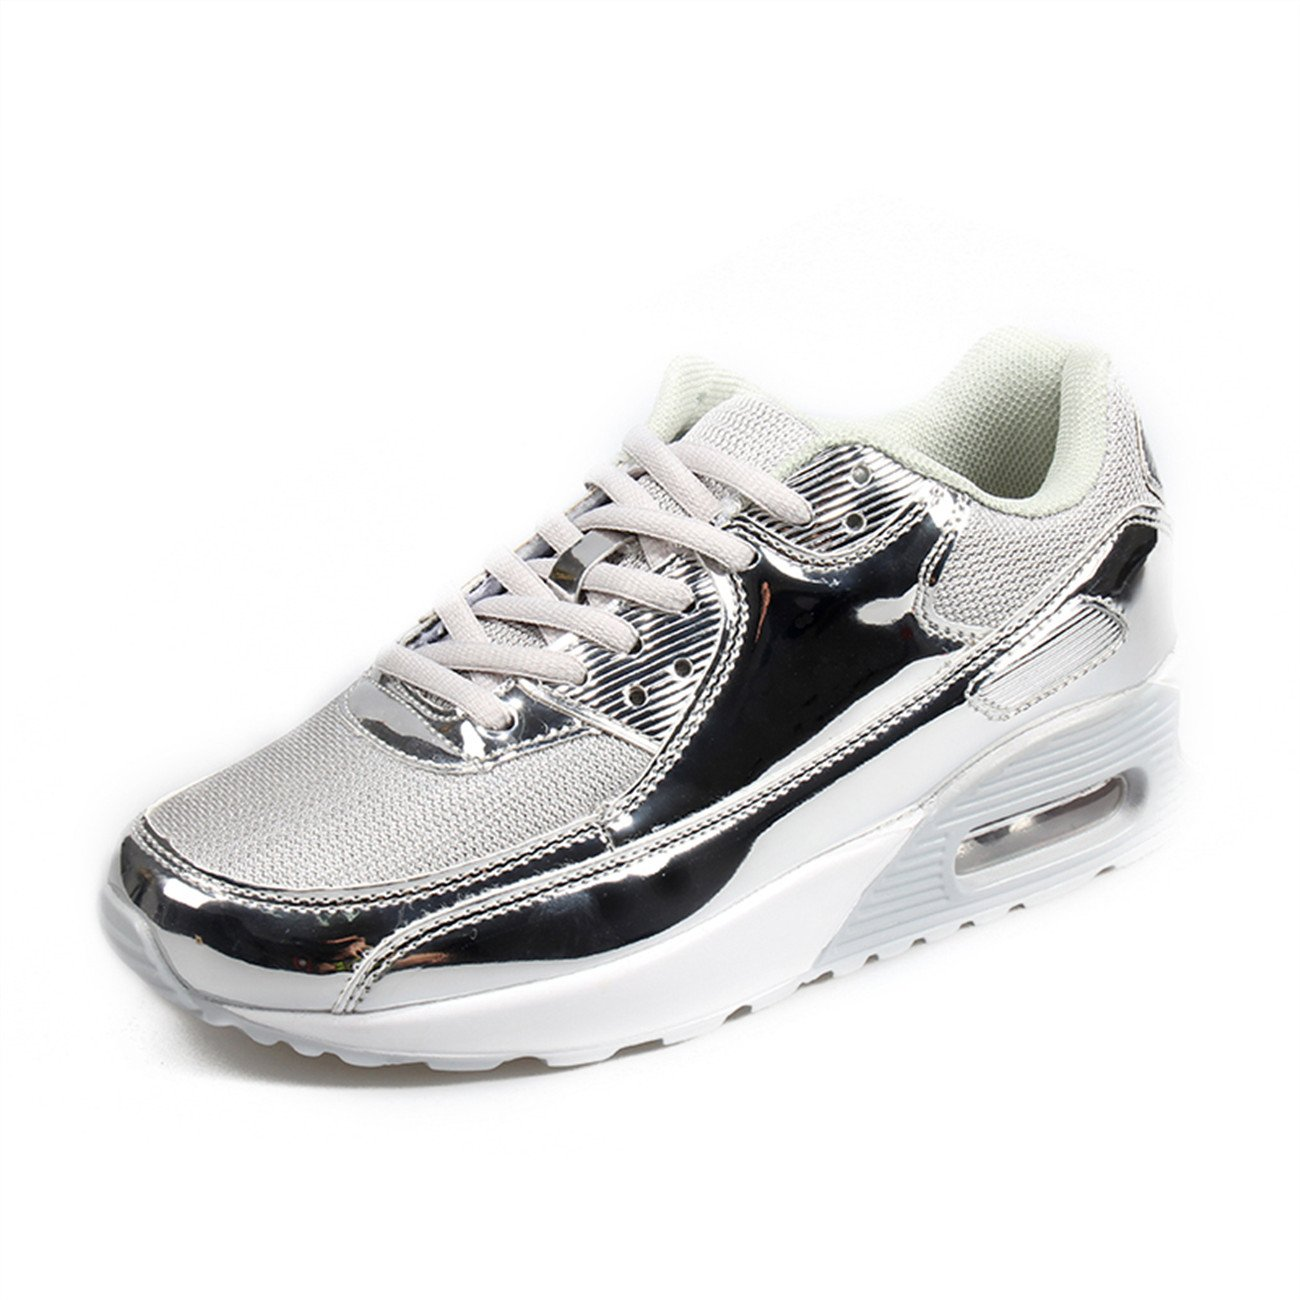 XINGLAN Men Women Unisex Couple Casual Running Sneakers Breathable Athletic Air Cushion Sports Shoes B073QVSHQZ Men 12 D(M) US|Silver